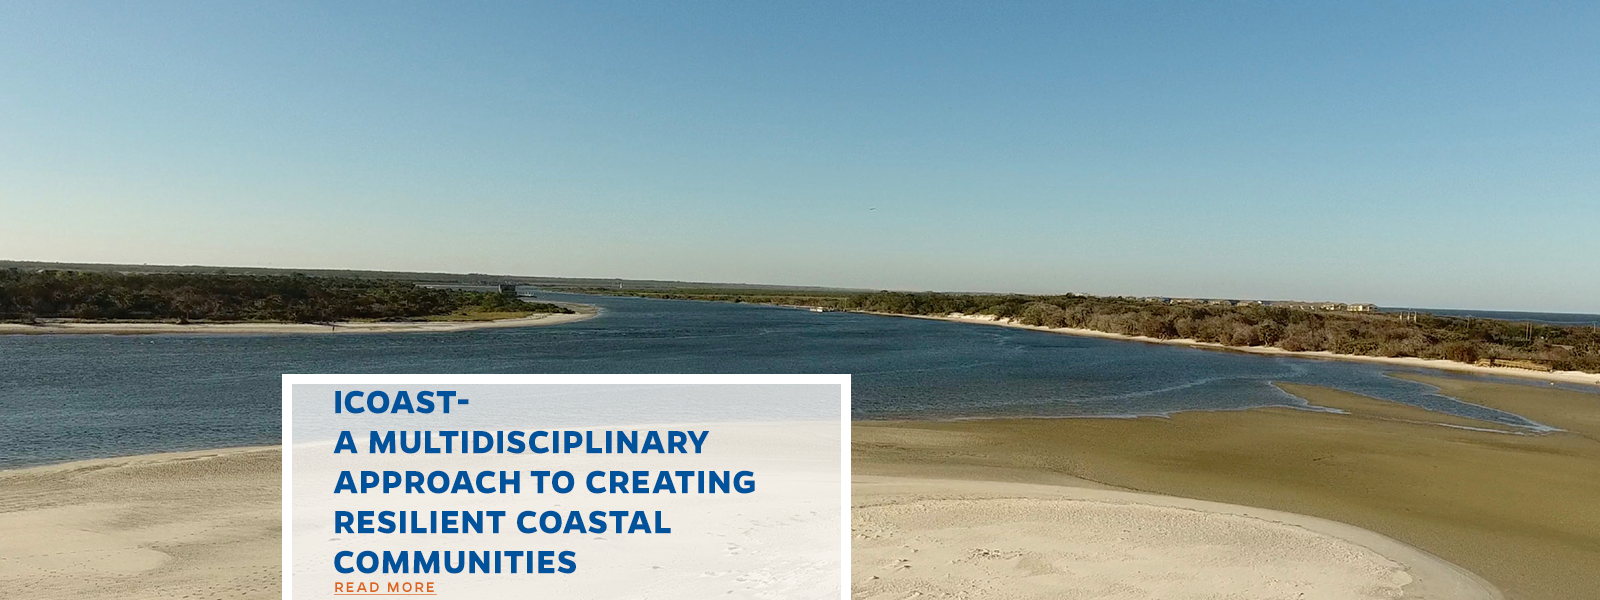 iCoast- A Multidisciplinary Approach to Creating Resilient Coastal Communities